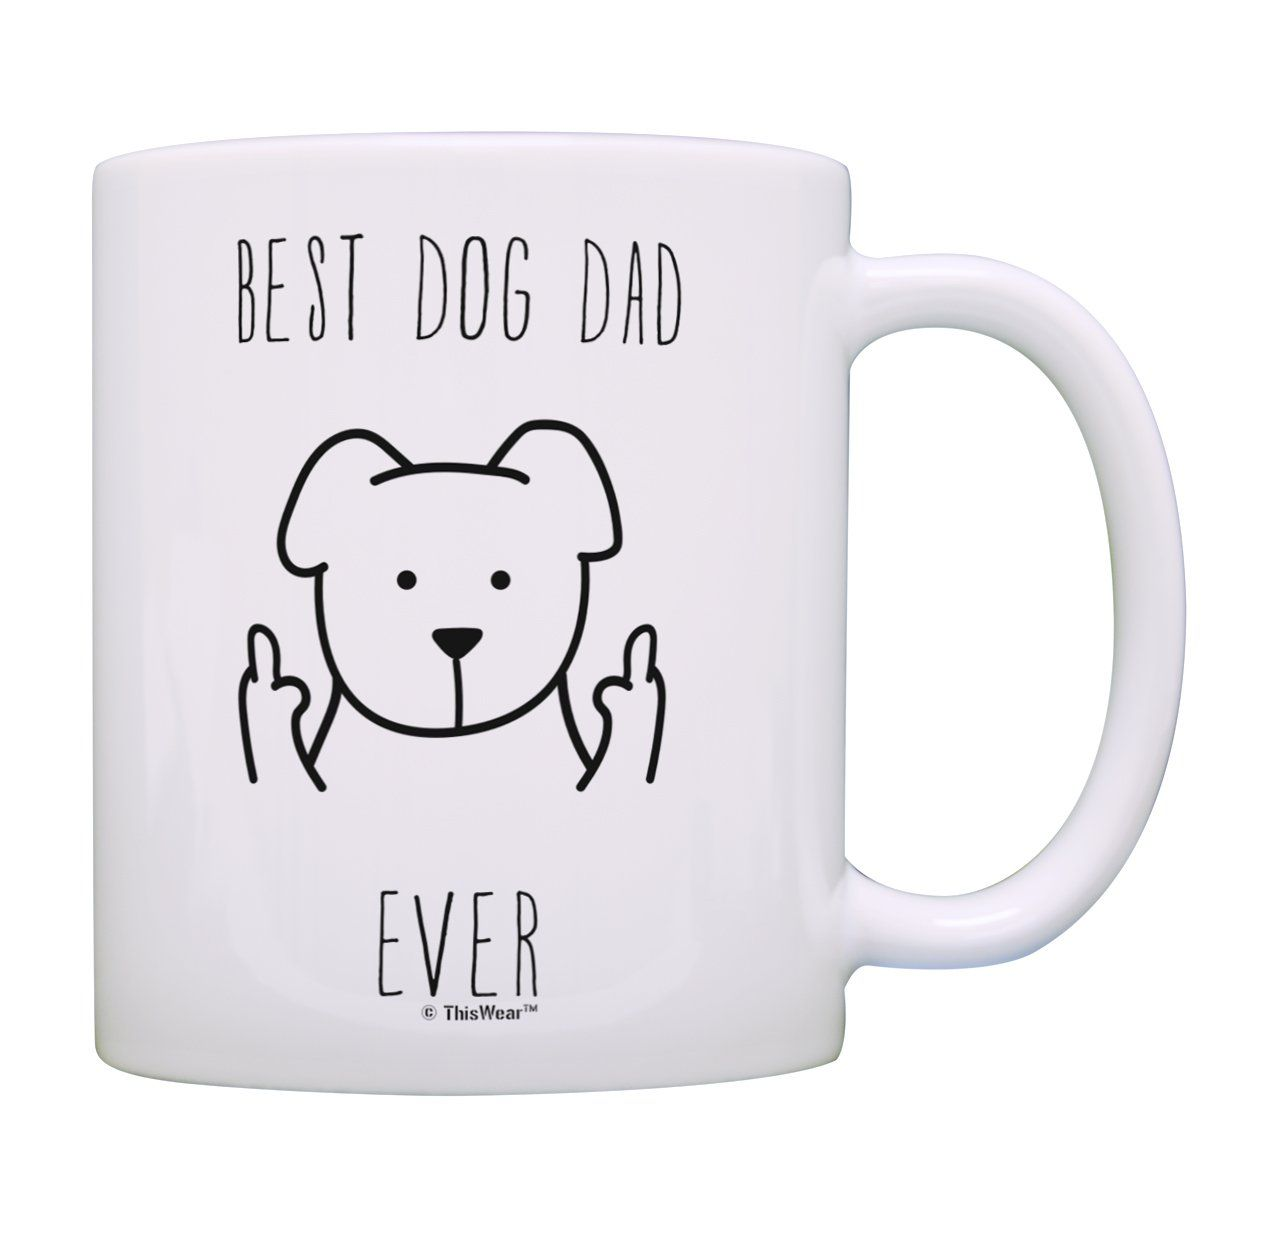 11 amazing gifts for fathers day from the dog dog dad